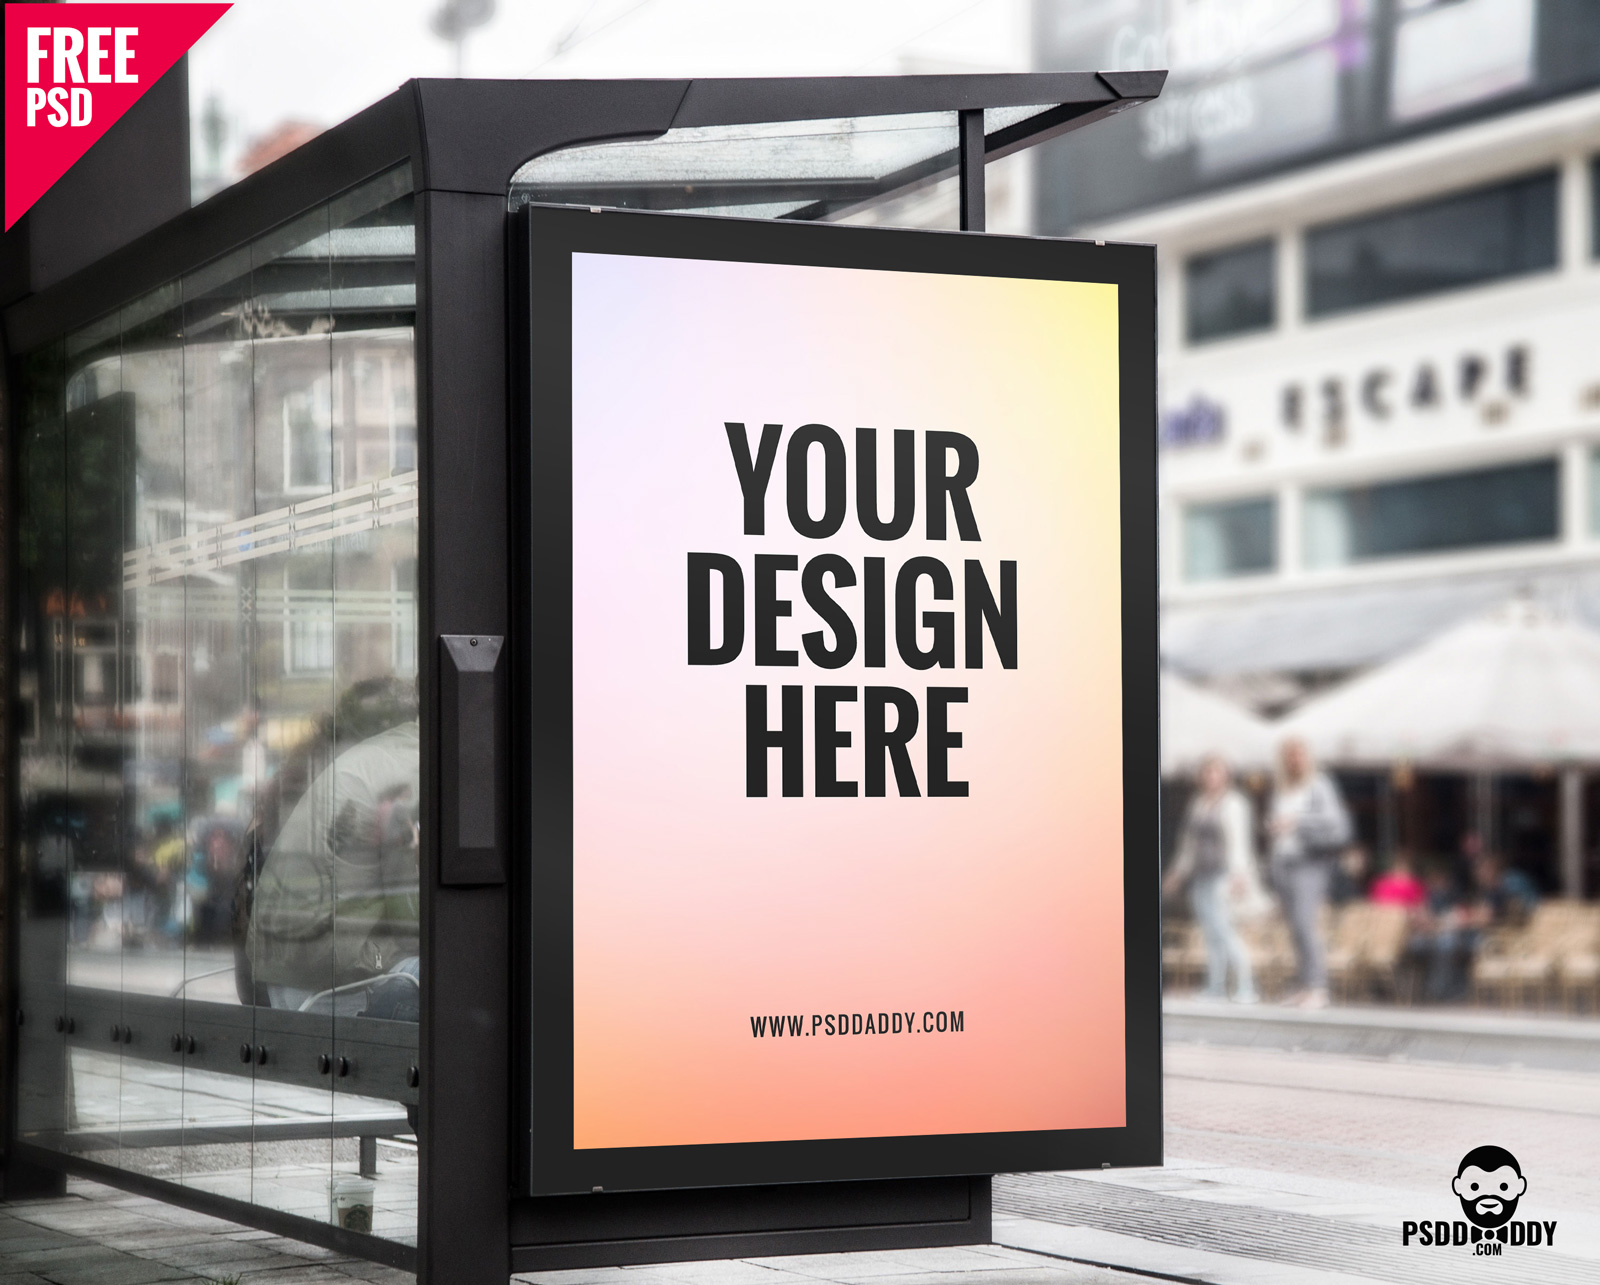 35+ Realistic Bus Stop Advertising PSD Mockup Templates | Decolore Net